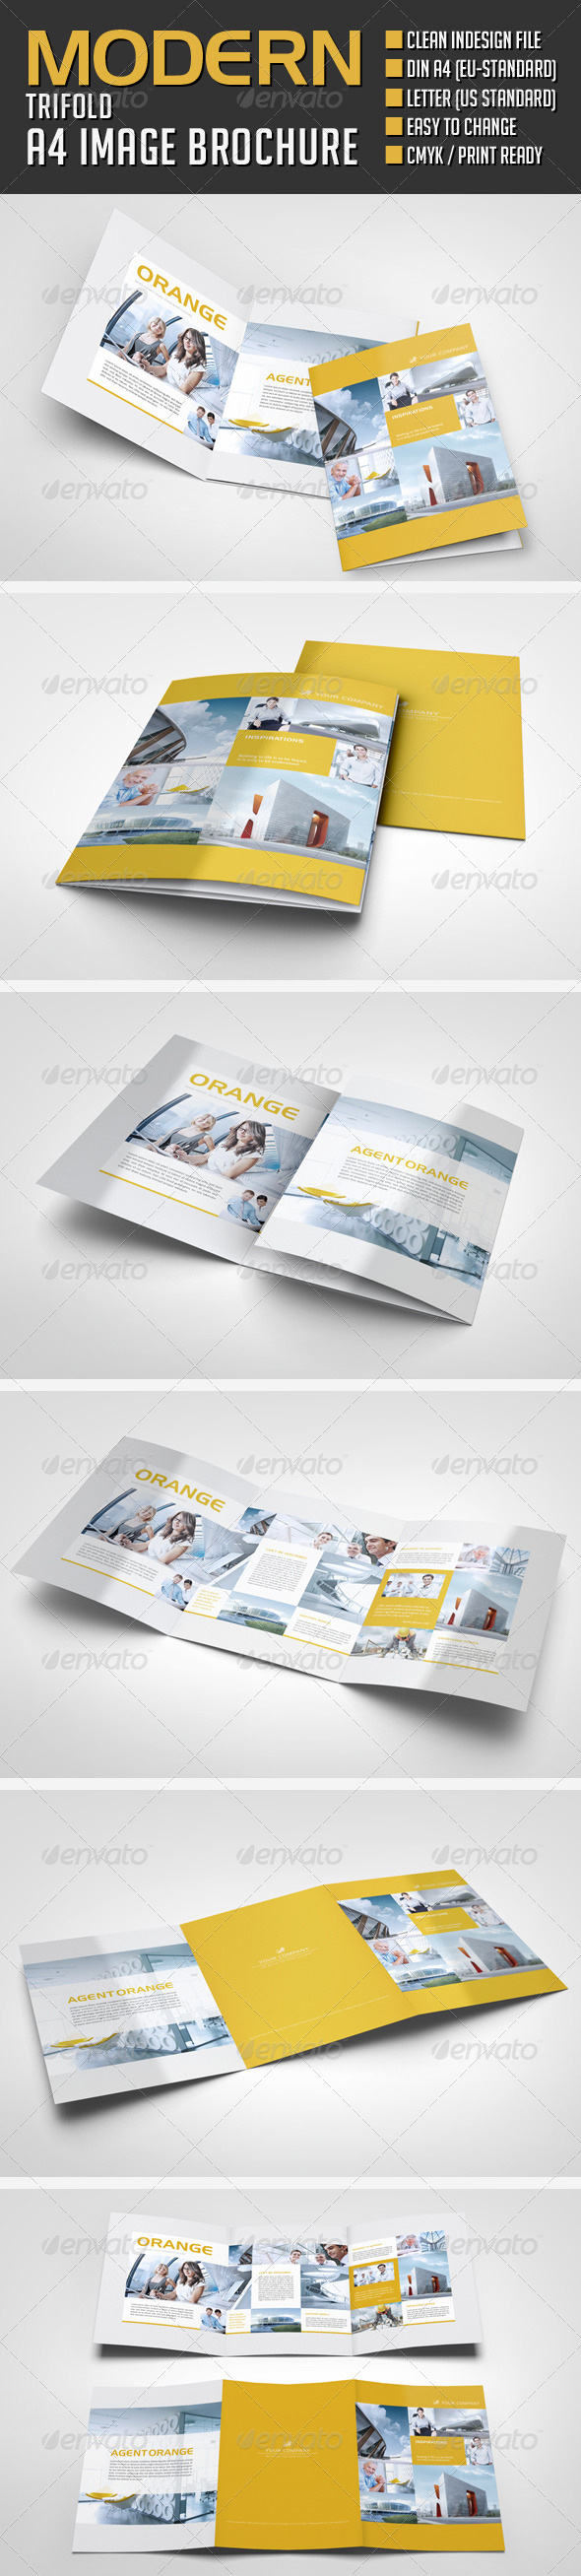 GraphicRiver Modern Image Trifold Brochure 8585279